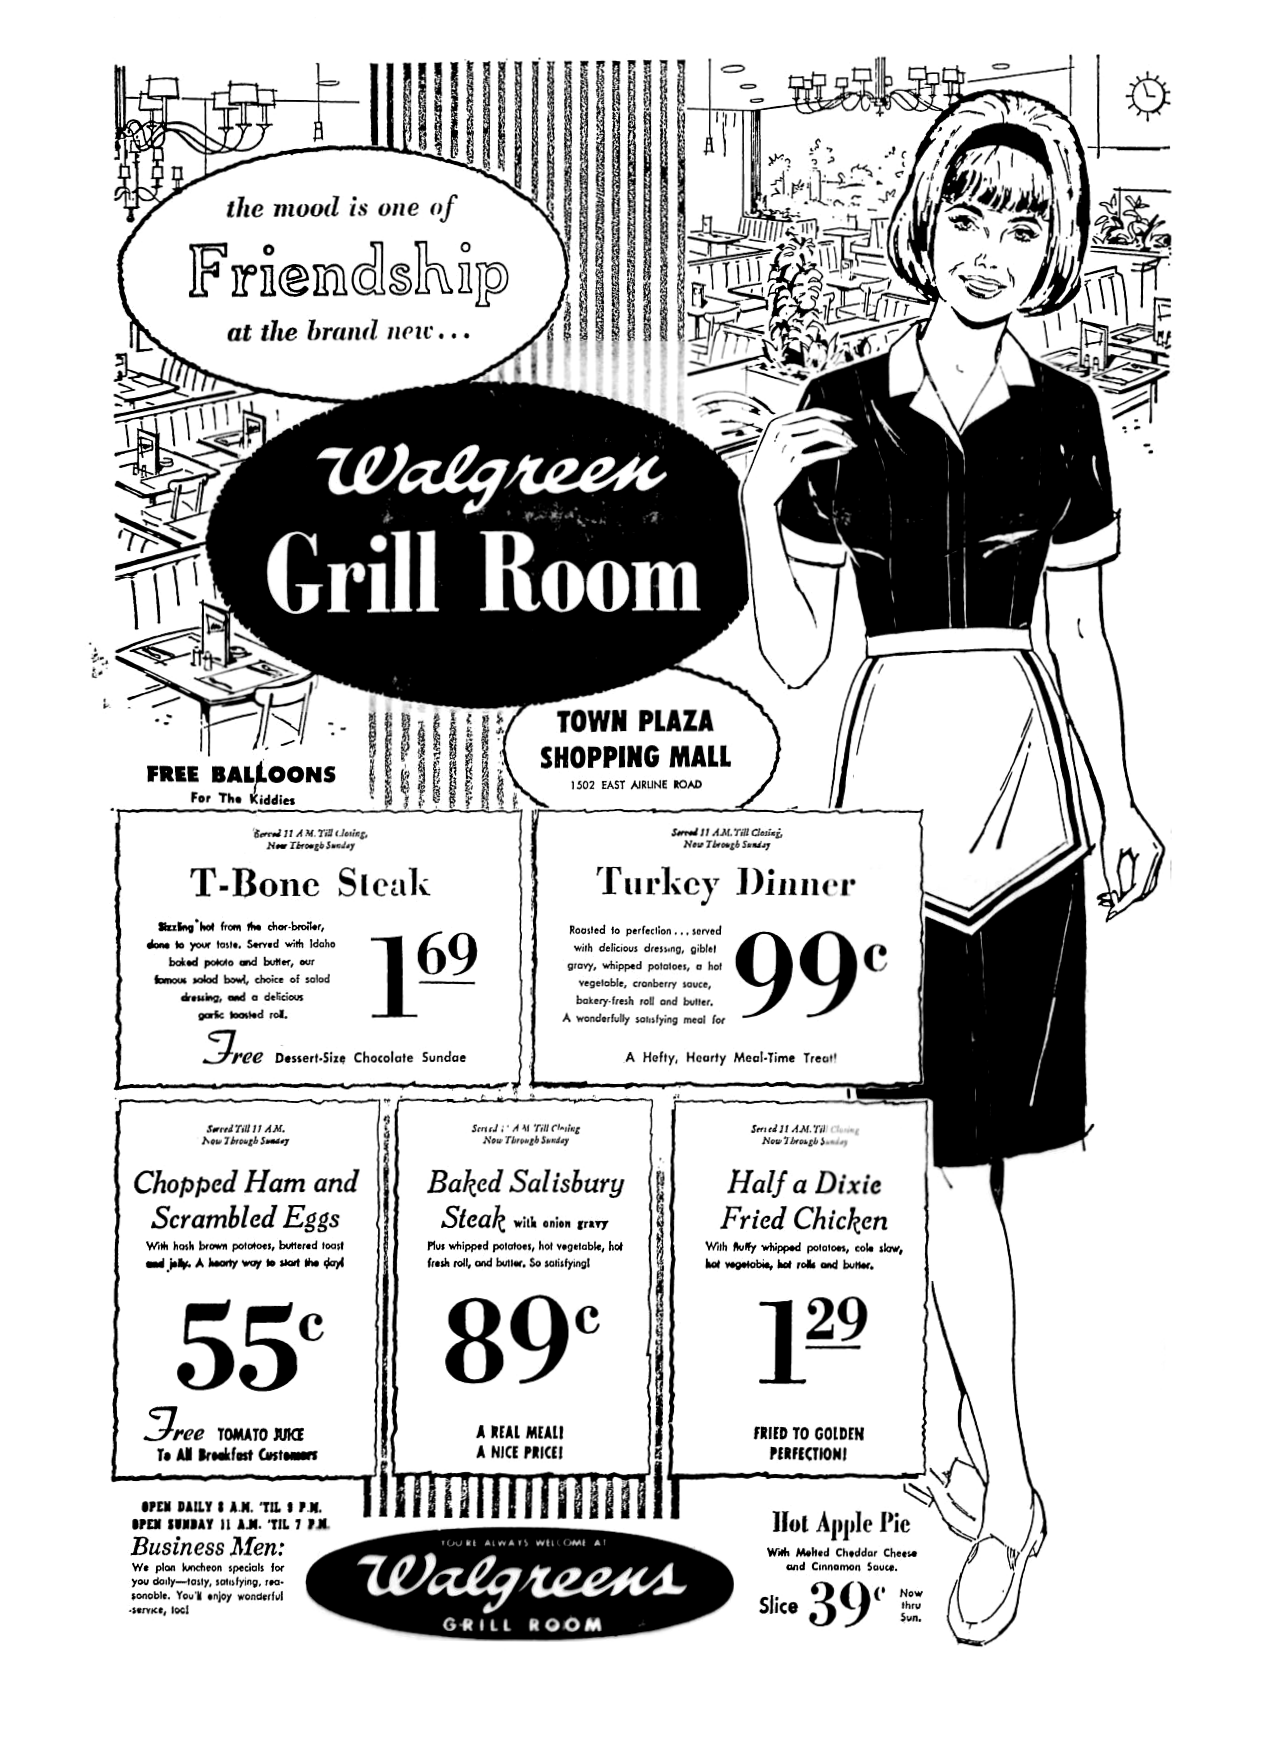 Walgreens Grill Room - April 1969 | 1960\'s Newspaper Vintage Retail ...